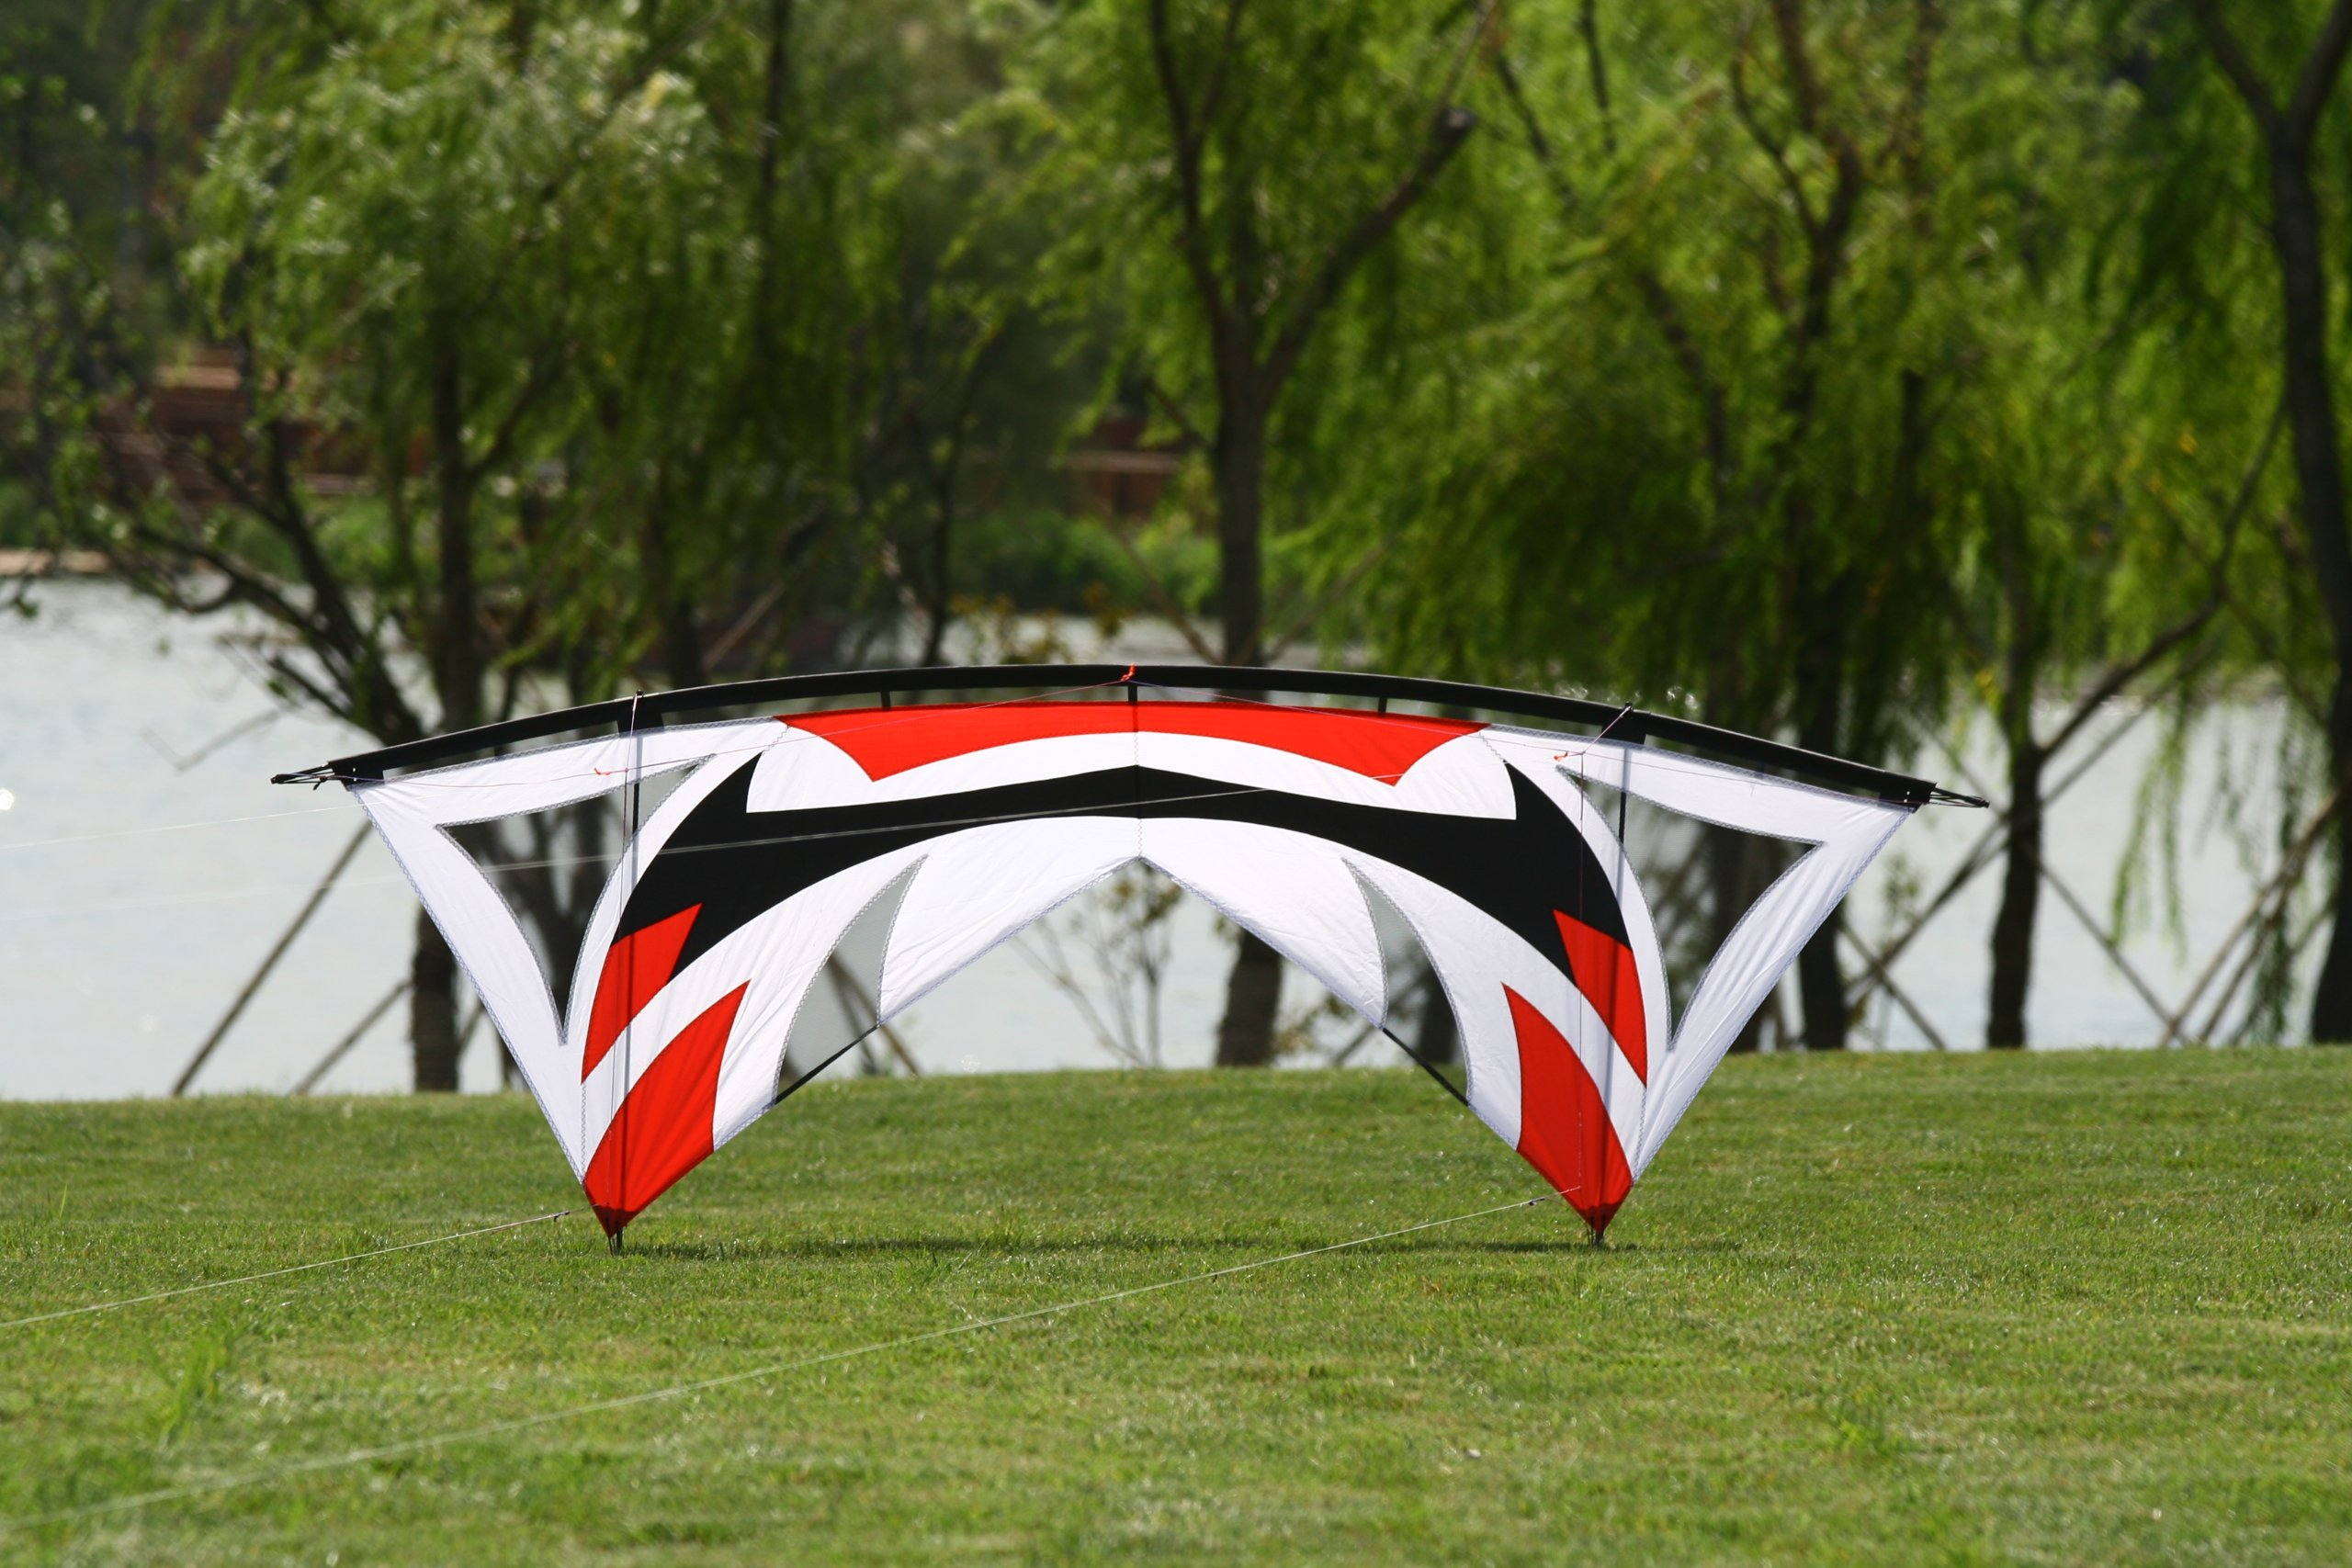 Hengda Kite Quad-line 7.9 Feet/2.4 Meter Stunt Kite with Dyneema Line + Quad Handle Package + Gauze Vent by Hengda kite